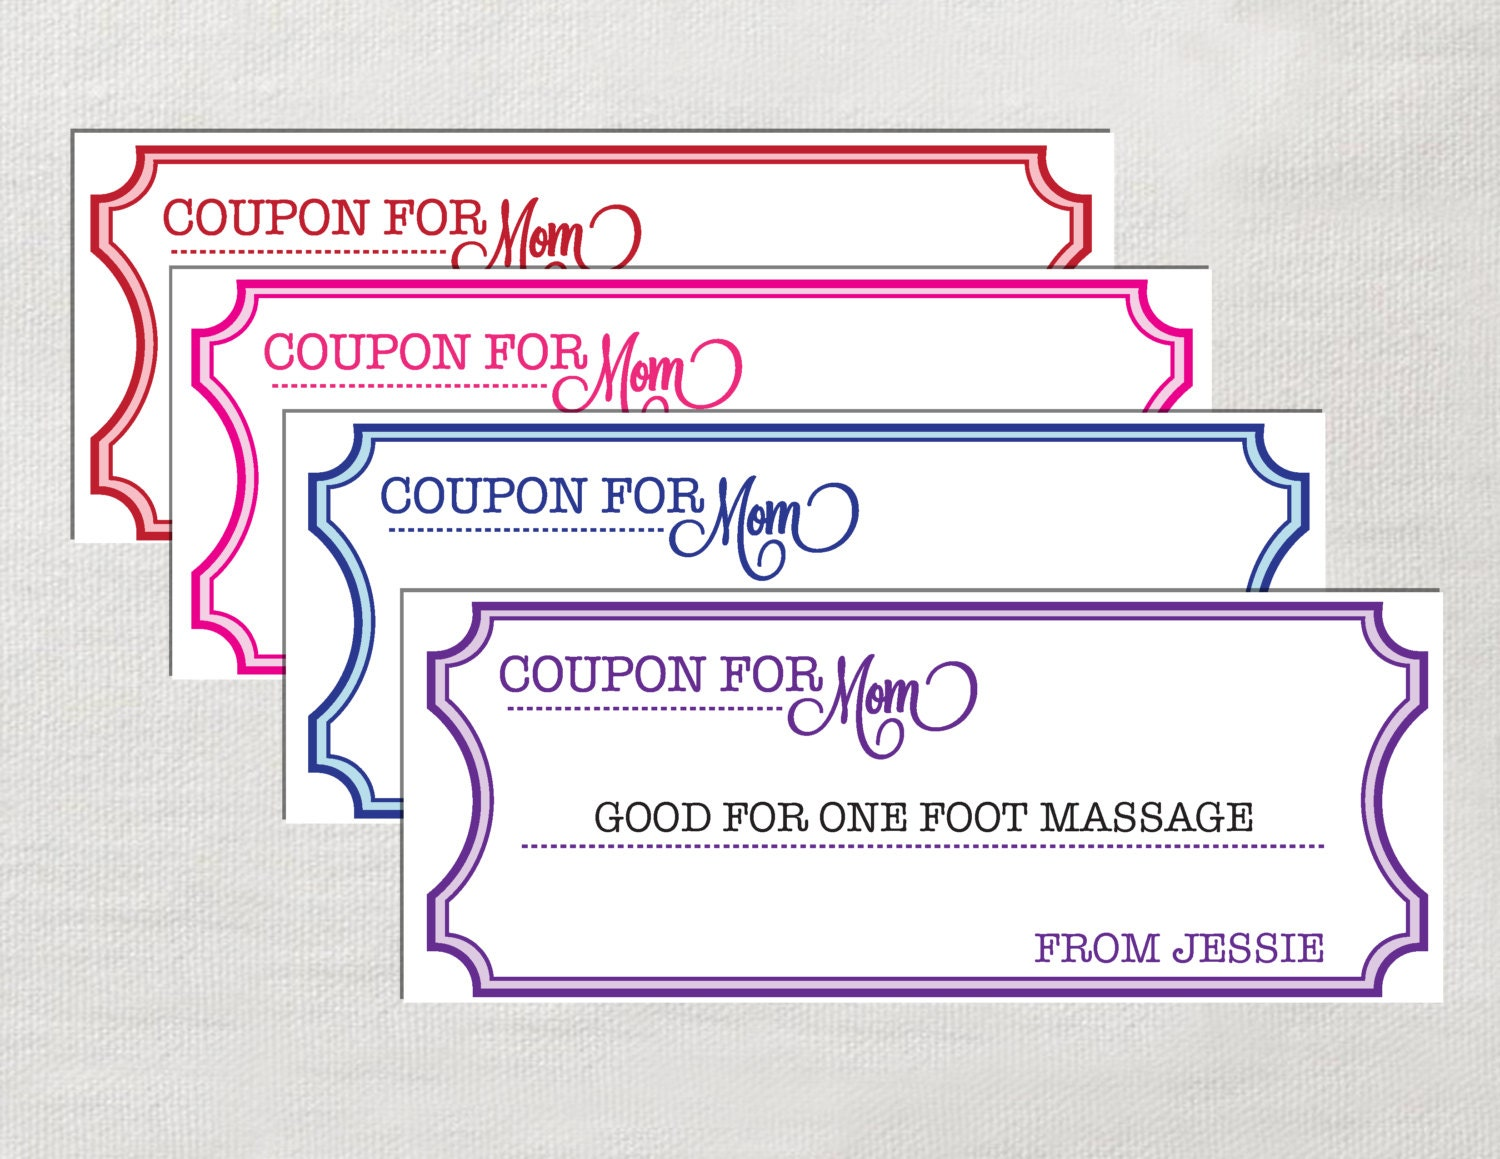 Coupons for mom instant download editable by laurevansdesign for Coupon template for pages